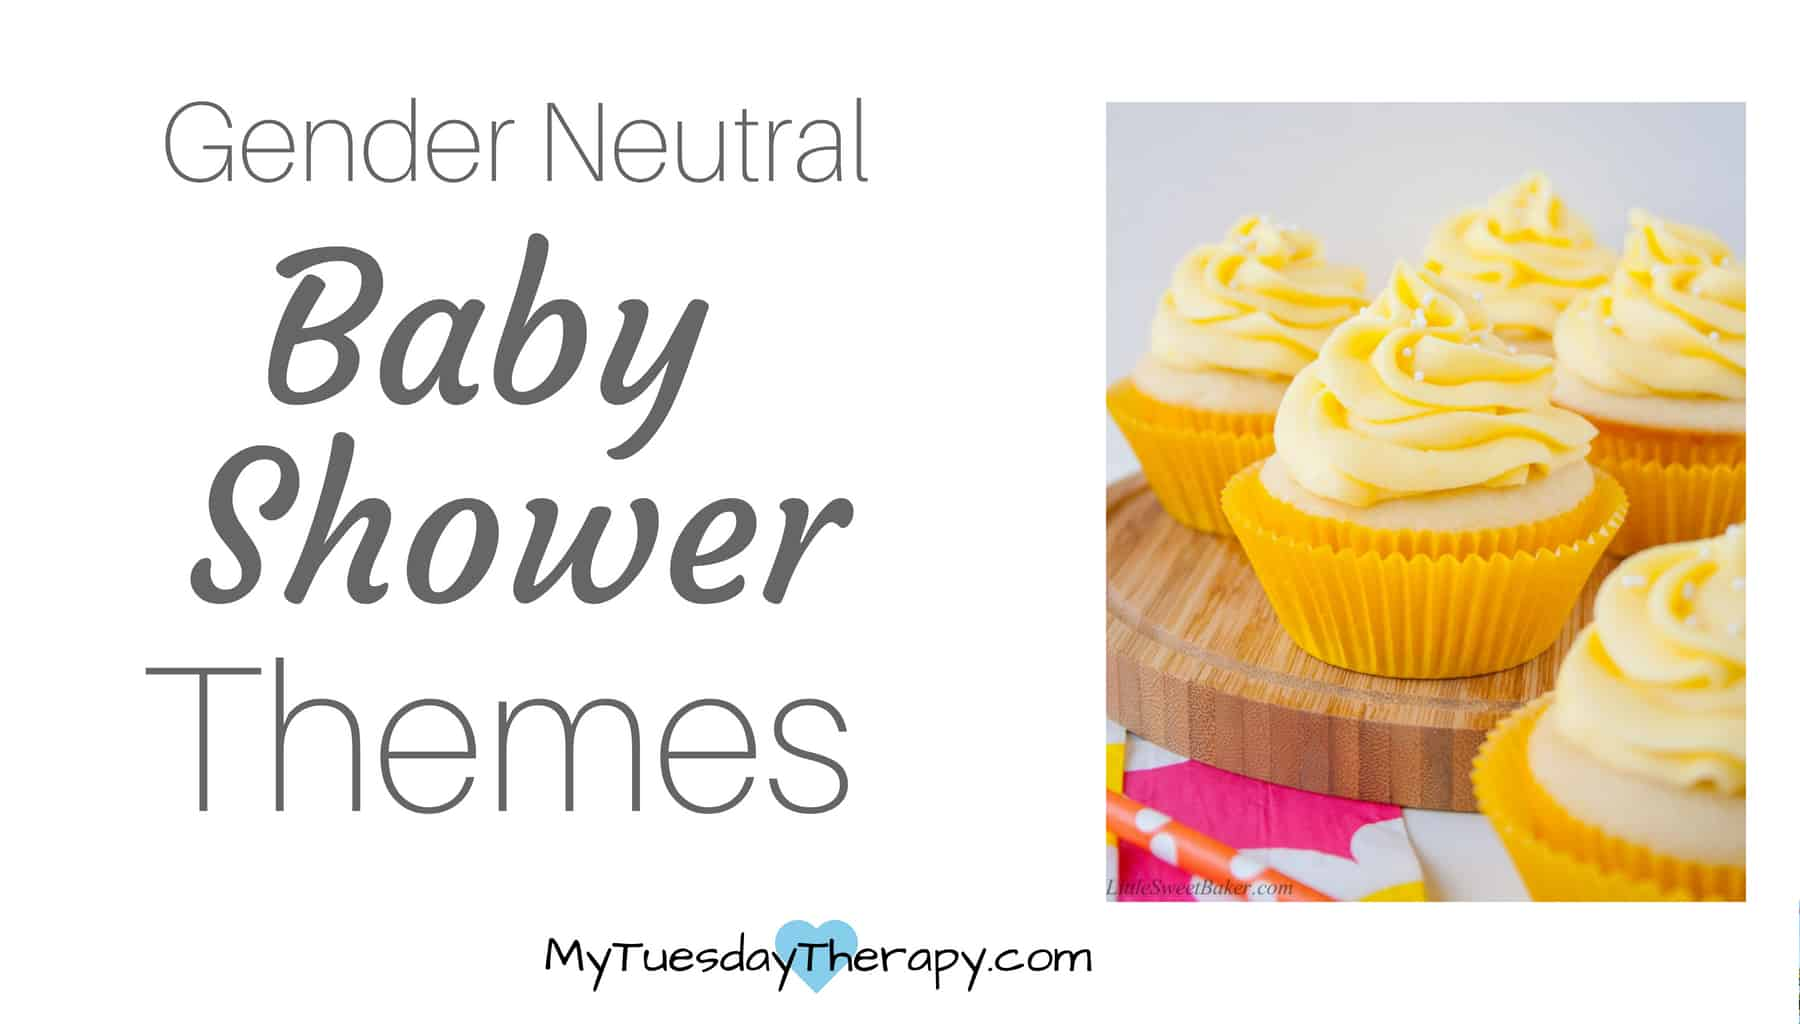 Gender Neutral Baby Shower Themes